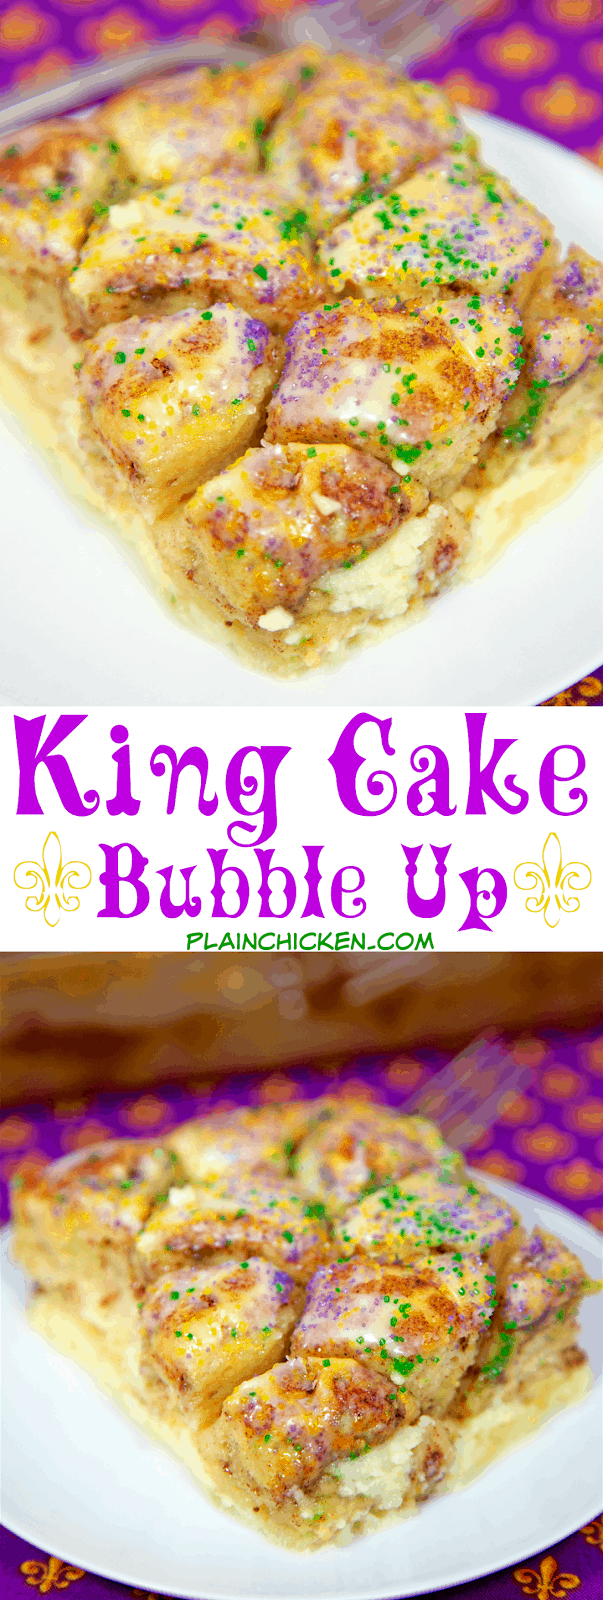 King Cake Bubble Up - We loved this!! Cinnamon rolls, eggs, milk, vanilla and cream cheese. Ready in 30 minutes. Better than any store-bought King Cake we've had! Can serve warm or room temperature. We ate way too much of this! Perfect for your Mardi Gras party!